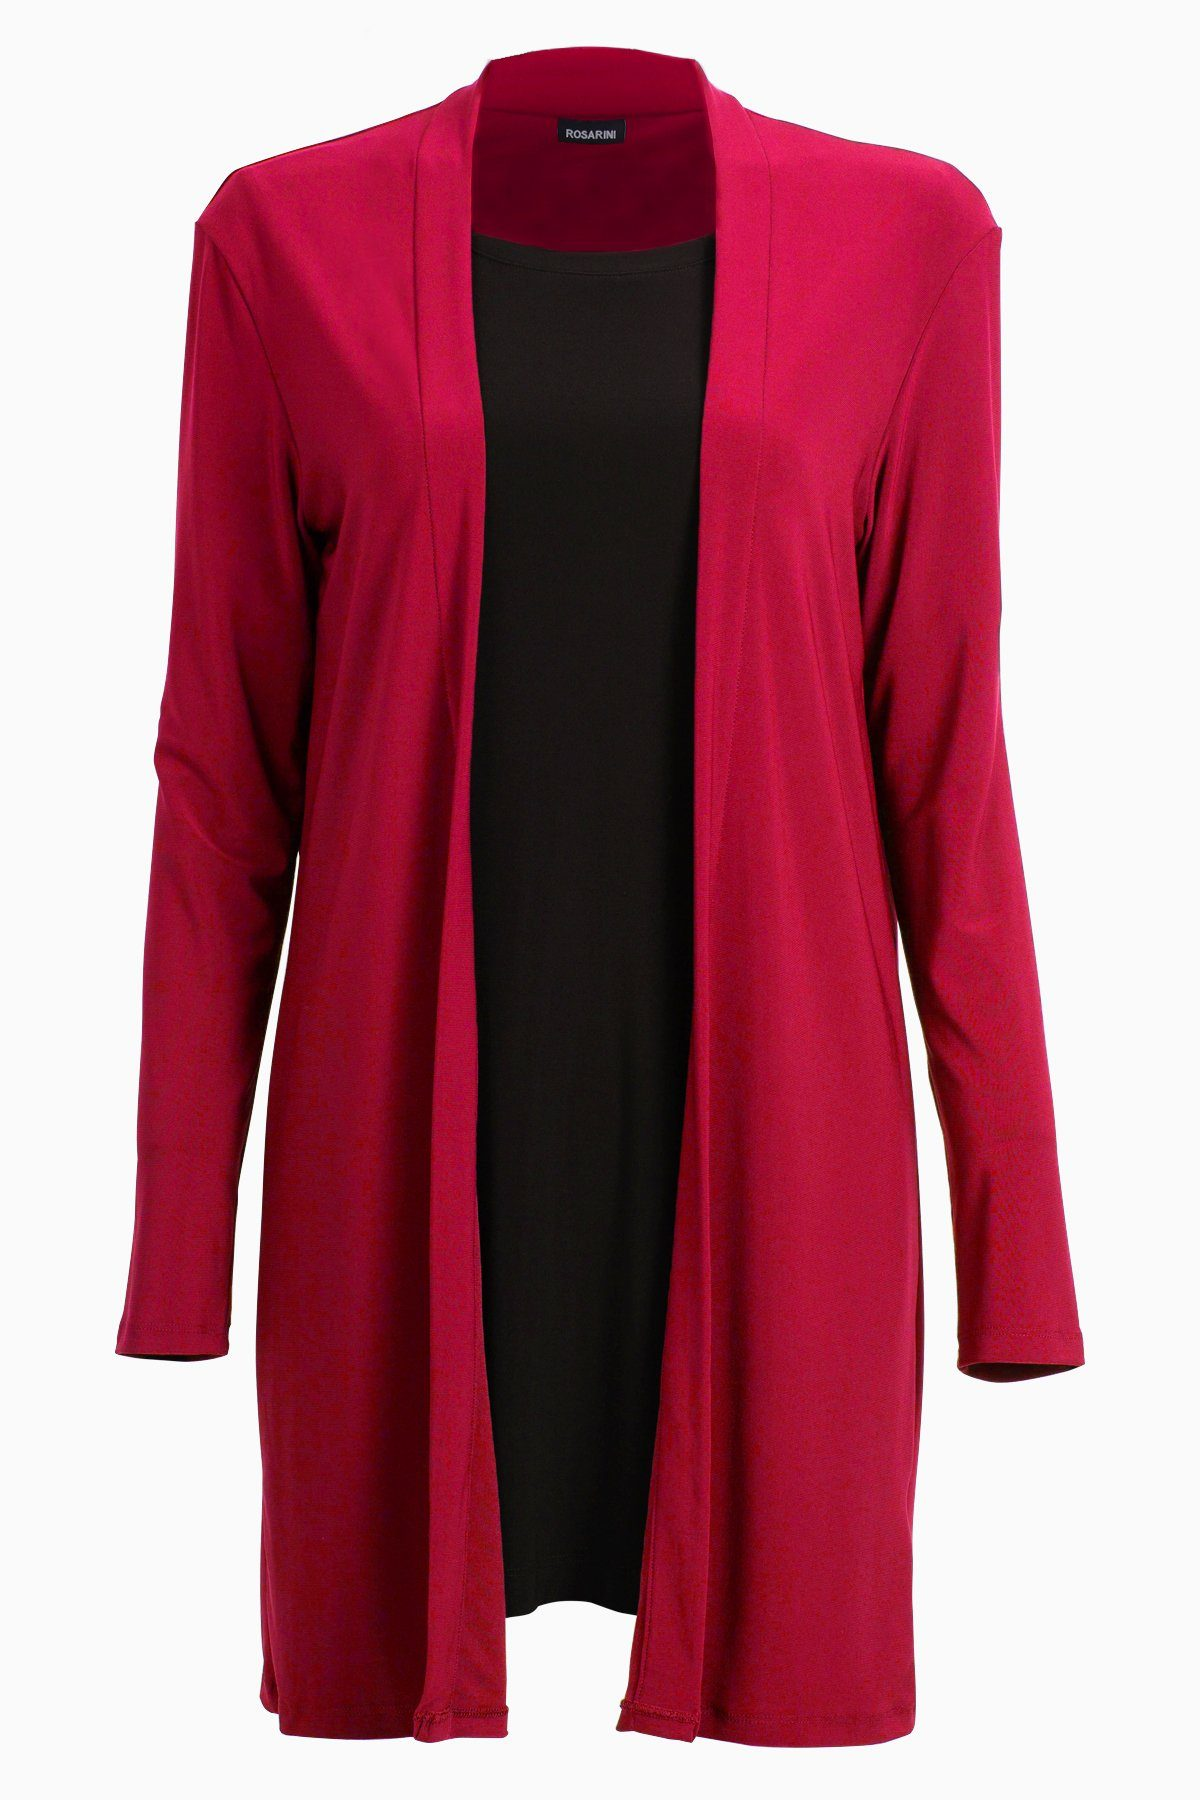 PLUS SIZE Long Sleeve Mid Length Cardigan red